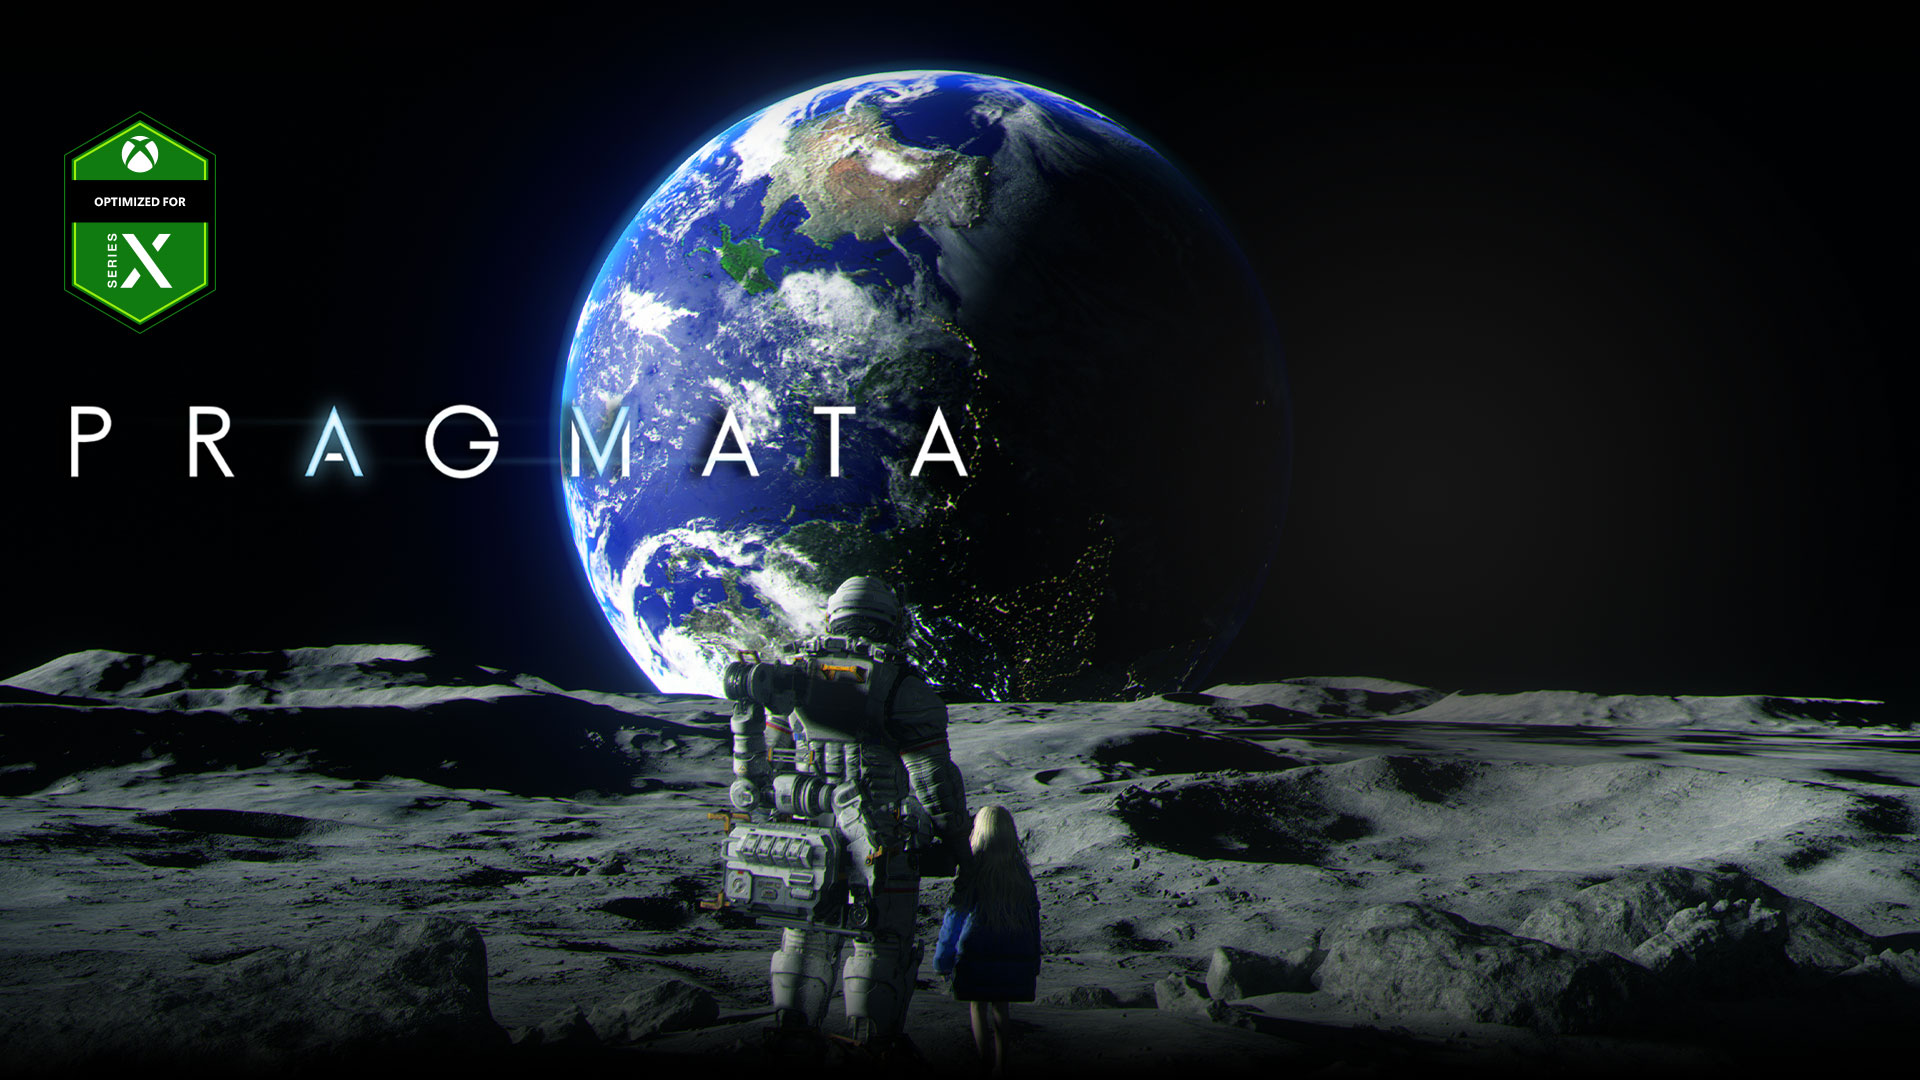 Optimized for Xbox Series X logo, Pragmata, An astronaut and a young girl look at the Earth while standing together on the moon